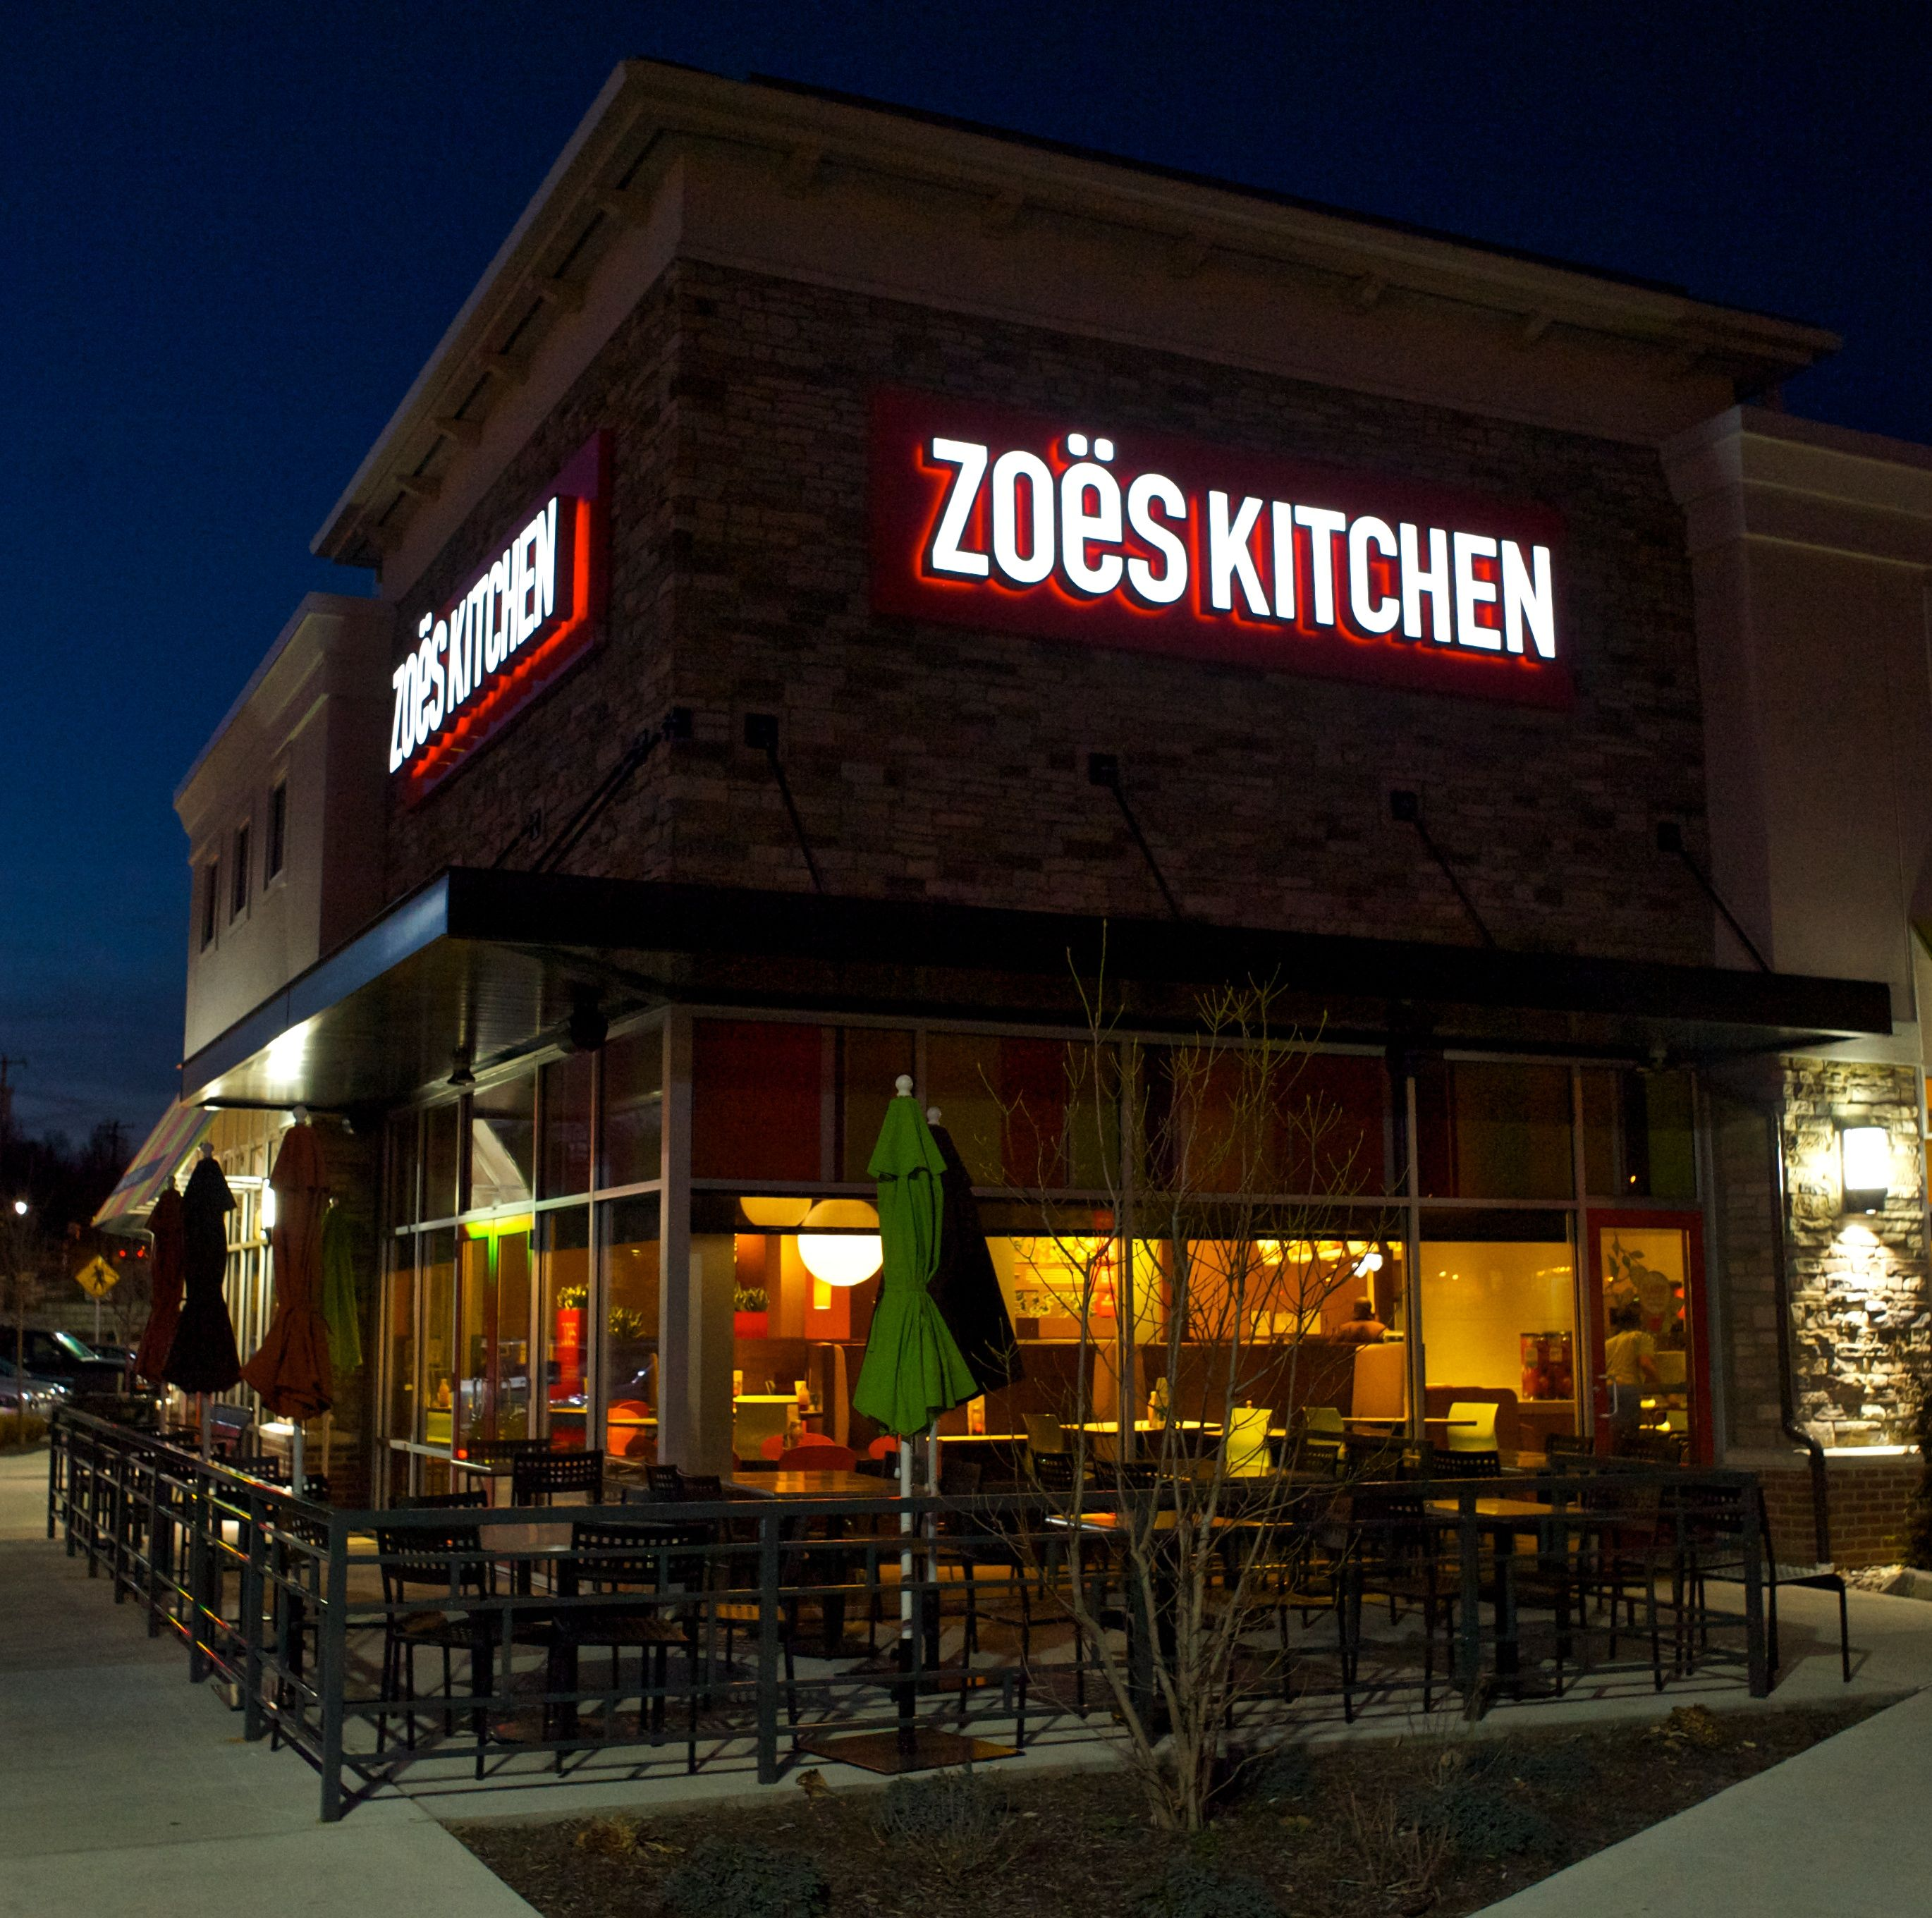 Zoes Kitchen Sign Zoes Kitchen In Willow Grove Pa Pics I Like  Pinterest  Zoes